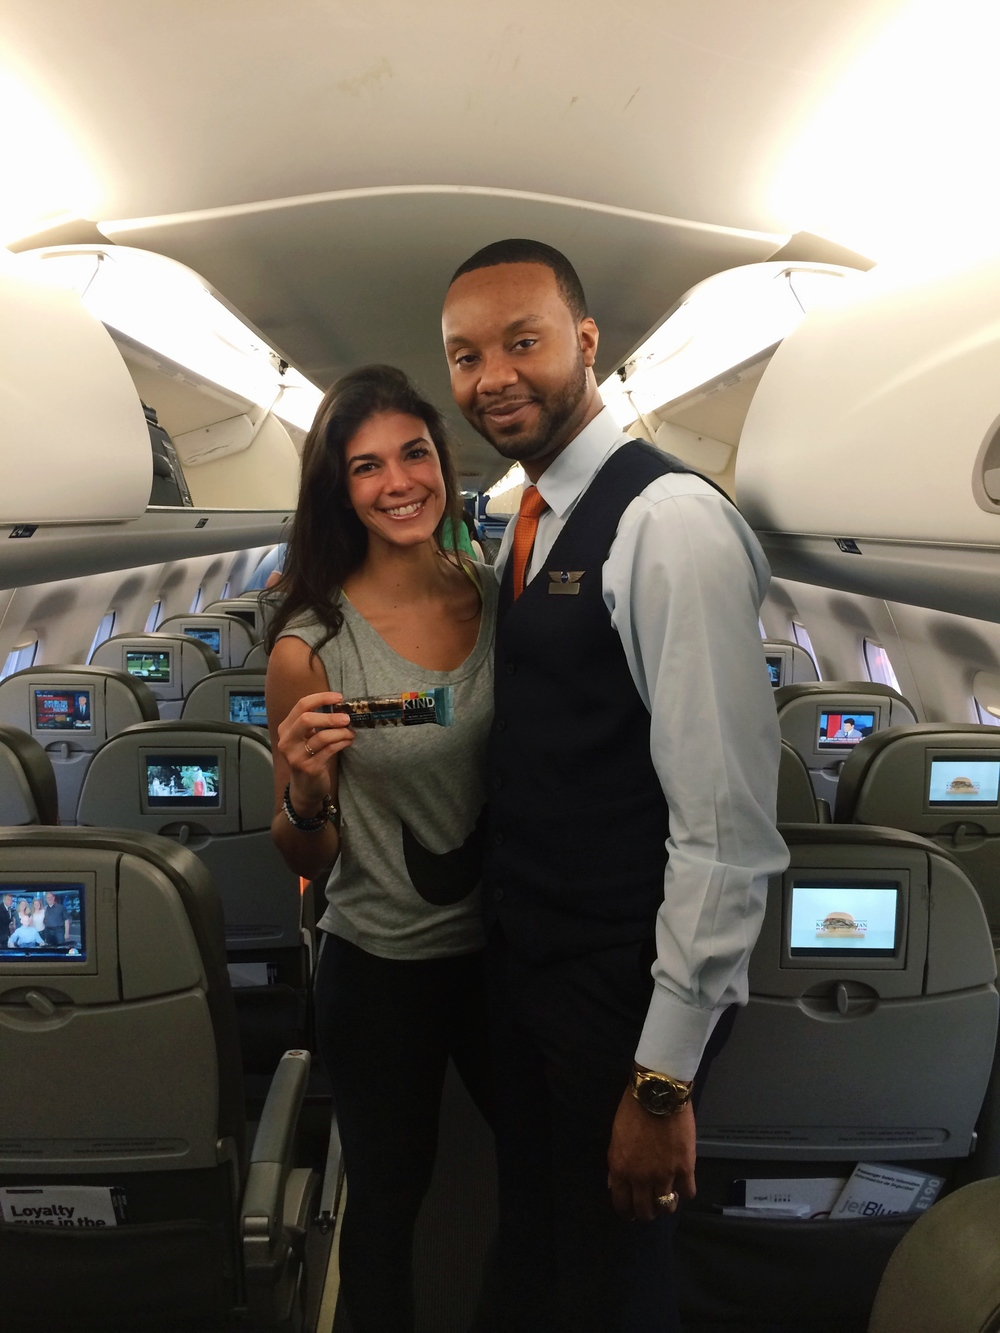 Lauren-Schwaiger-Blog-JetBlue-Review.jpg